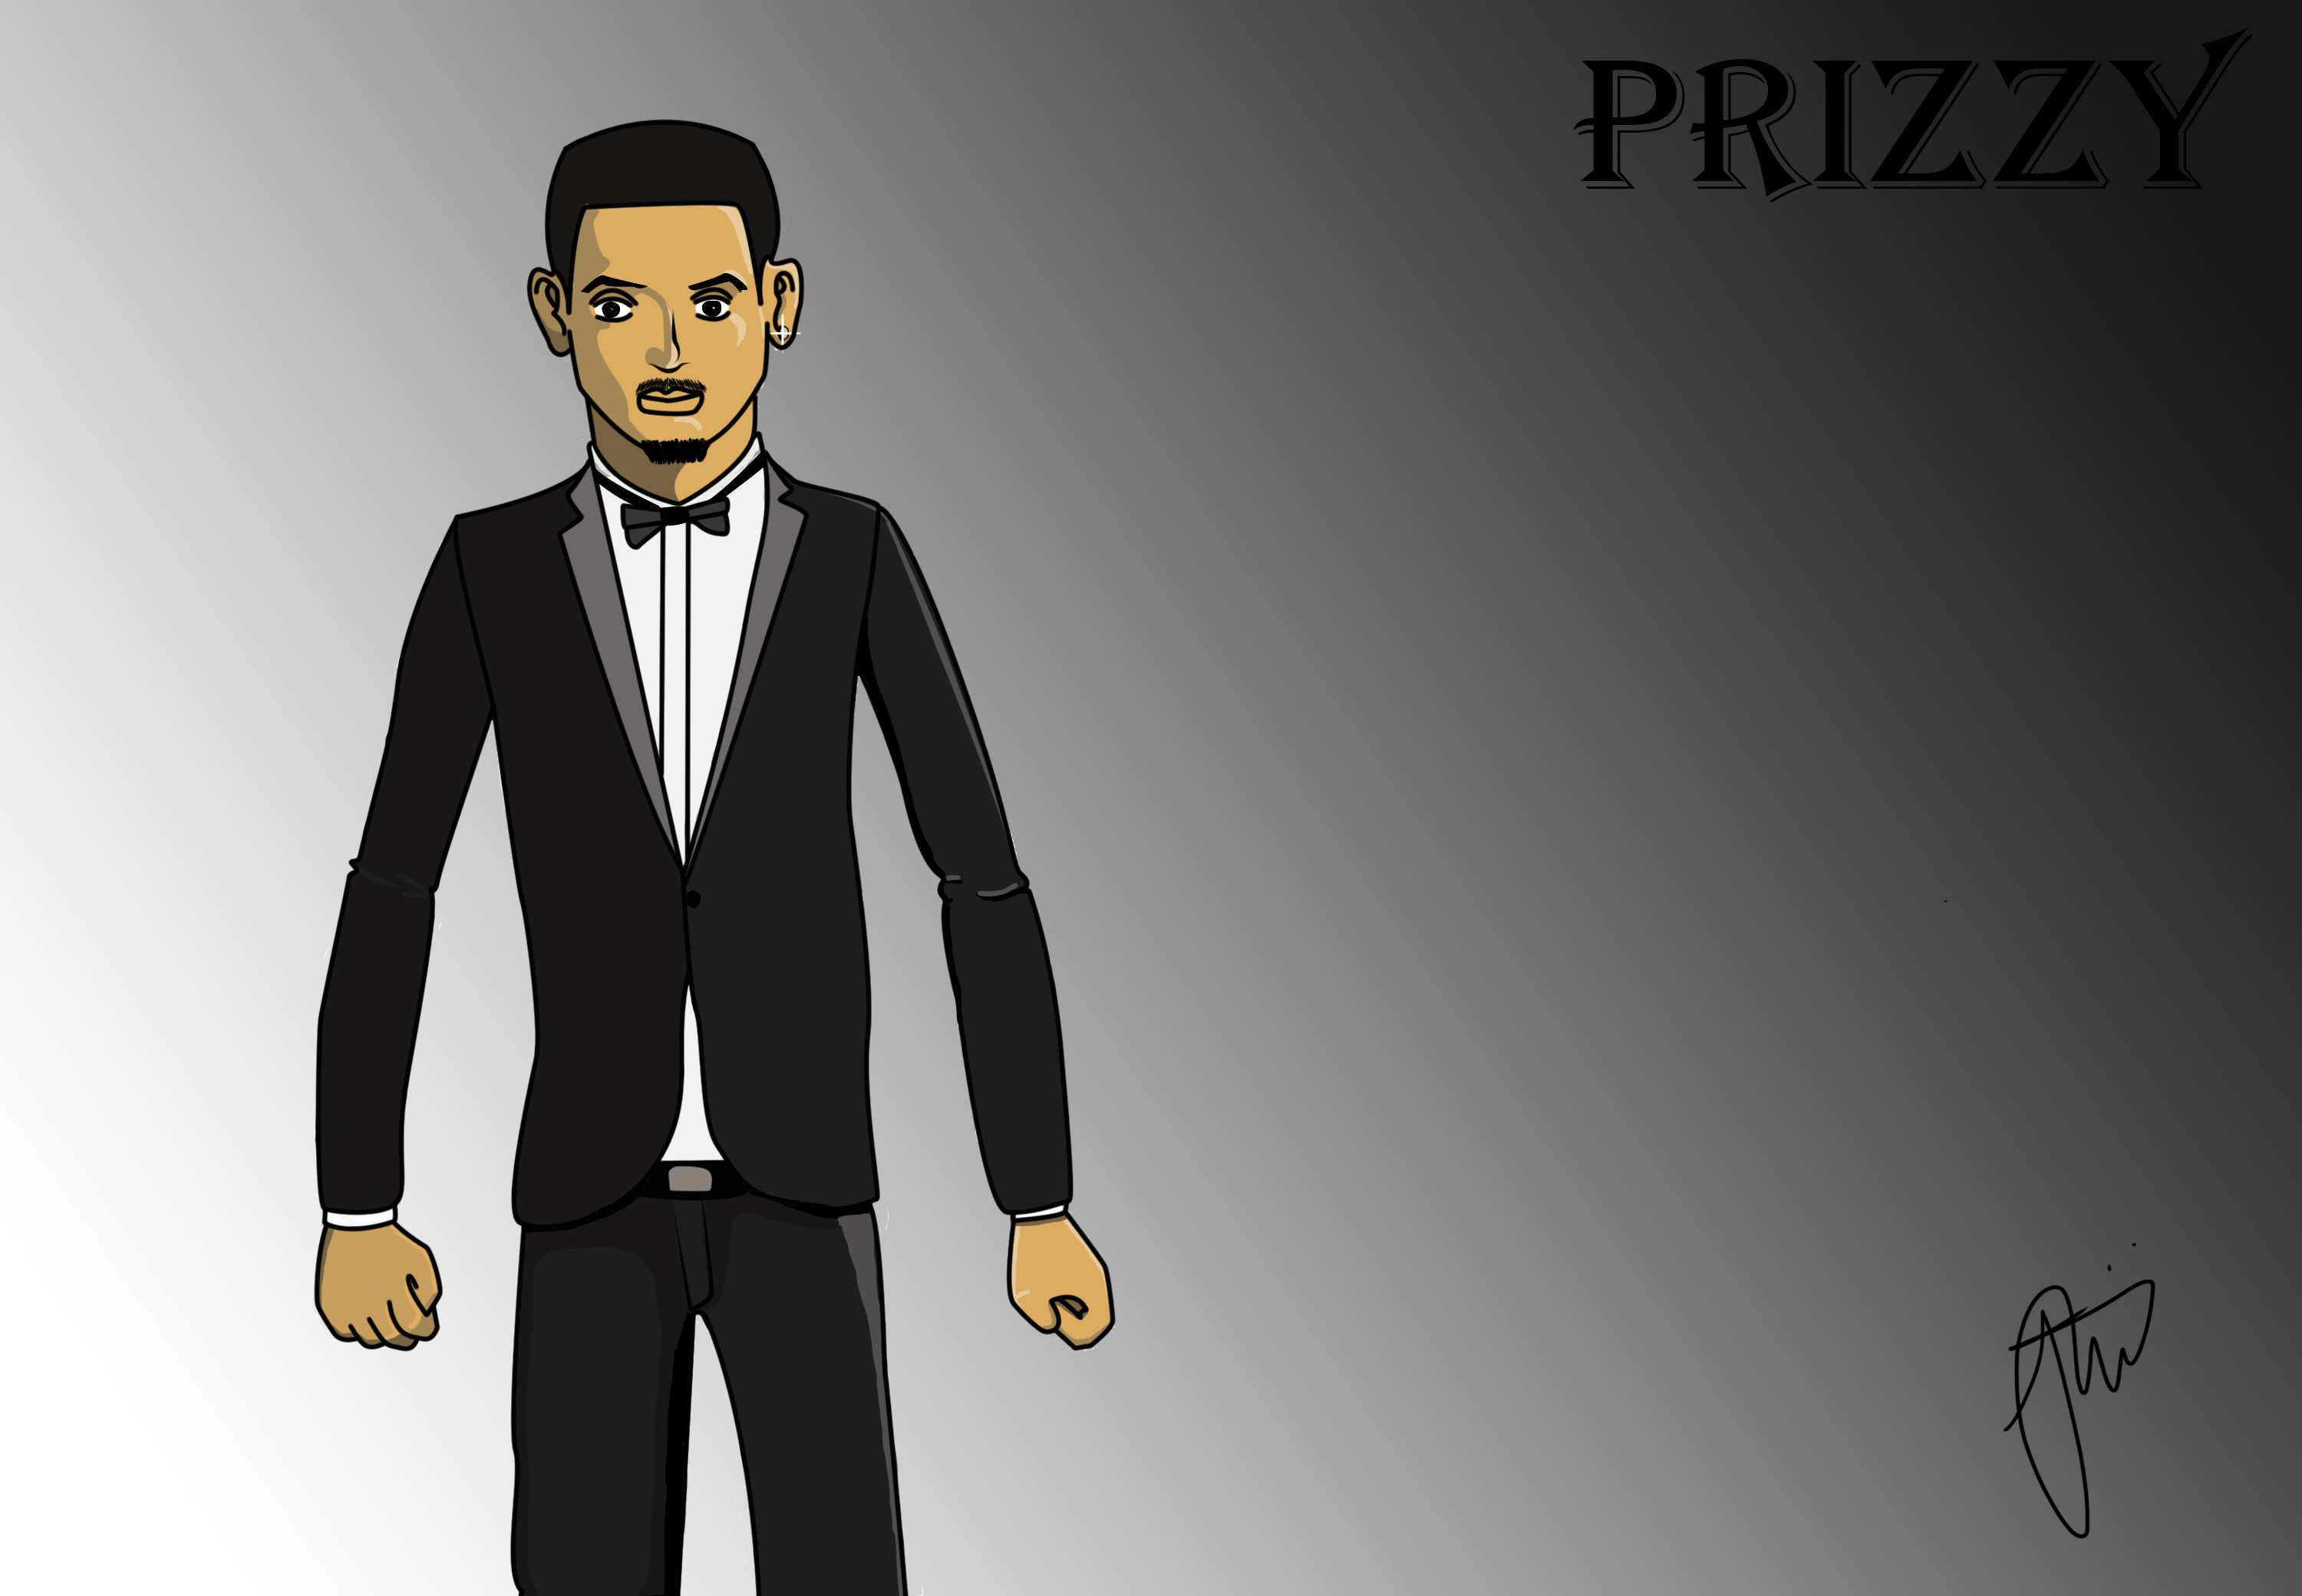 Prizzy